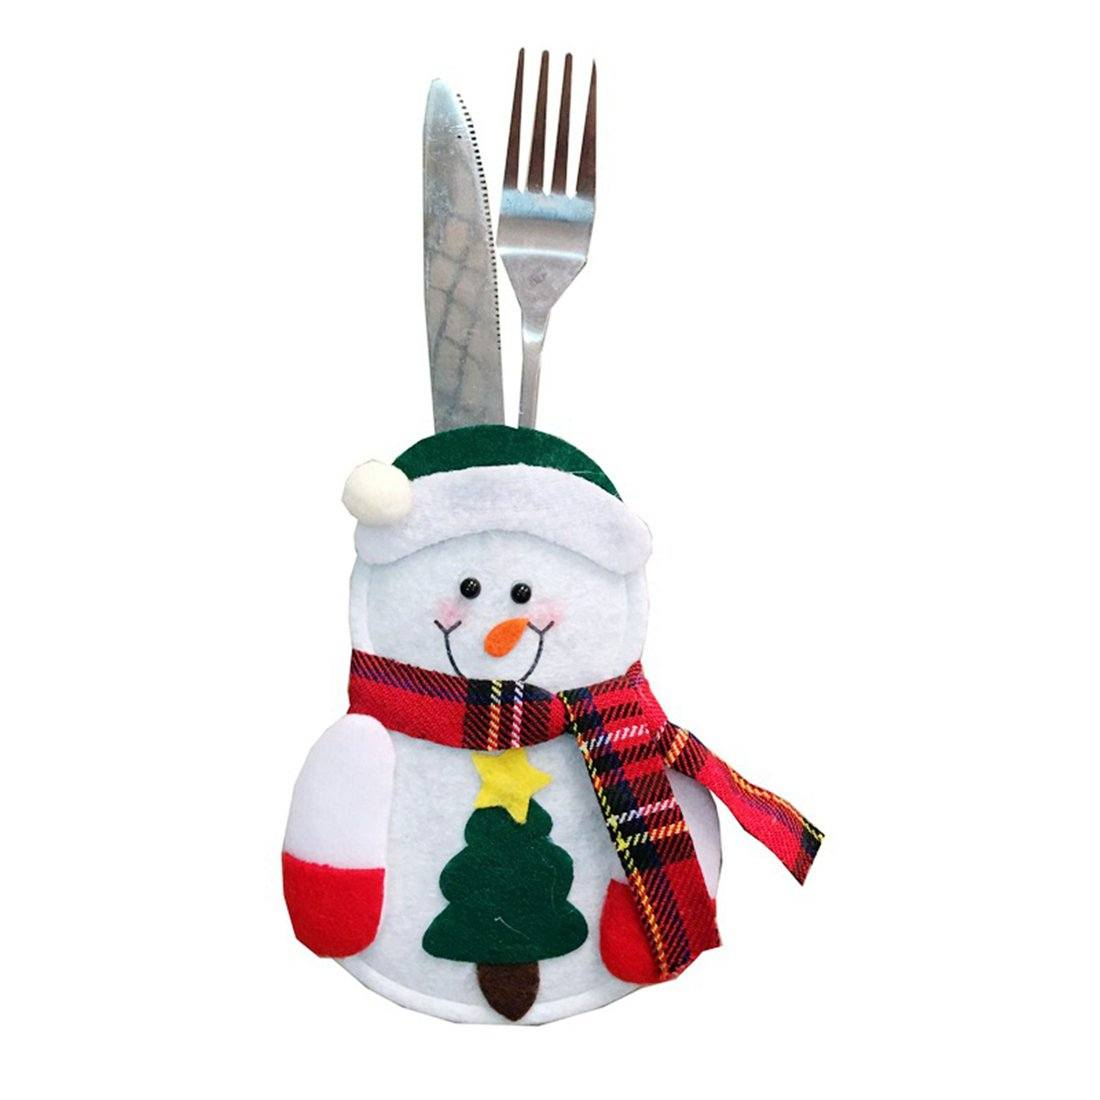 Holiday Cutlery Set - TEROF